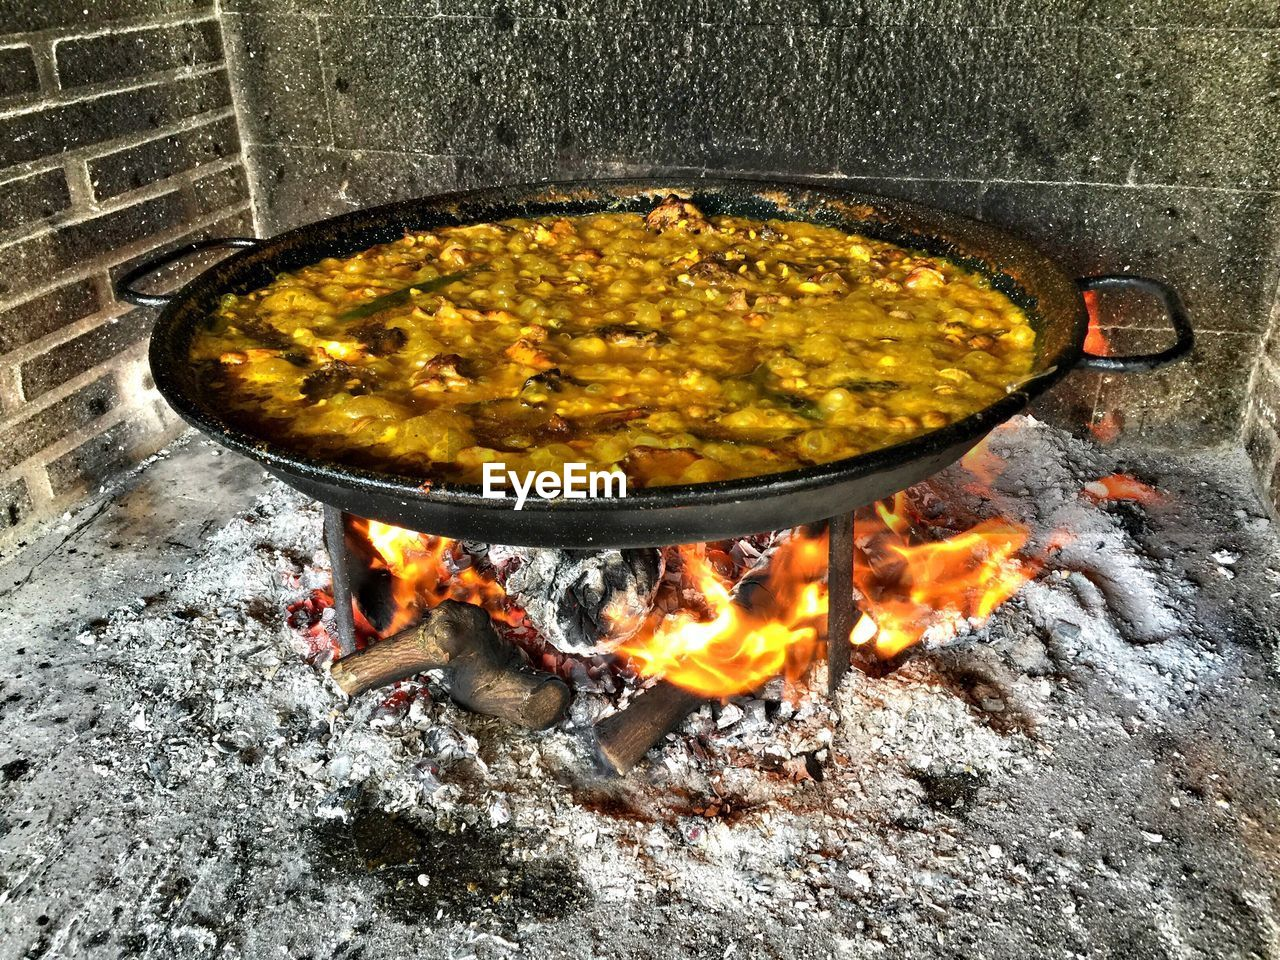 Food Cooking In Container On Wood Burning Stove